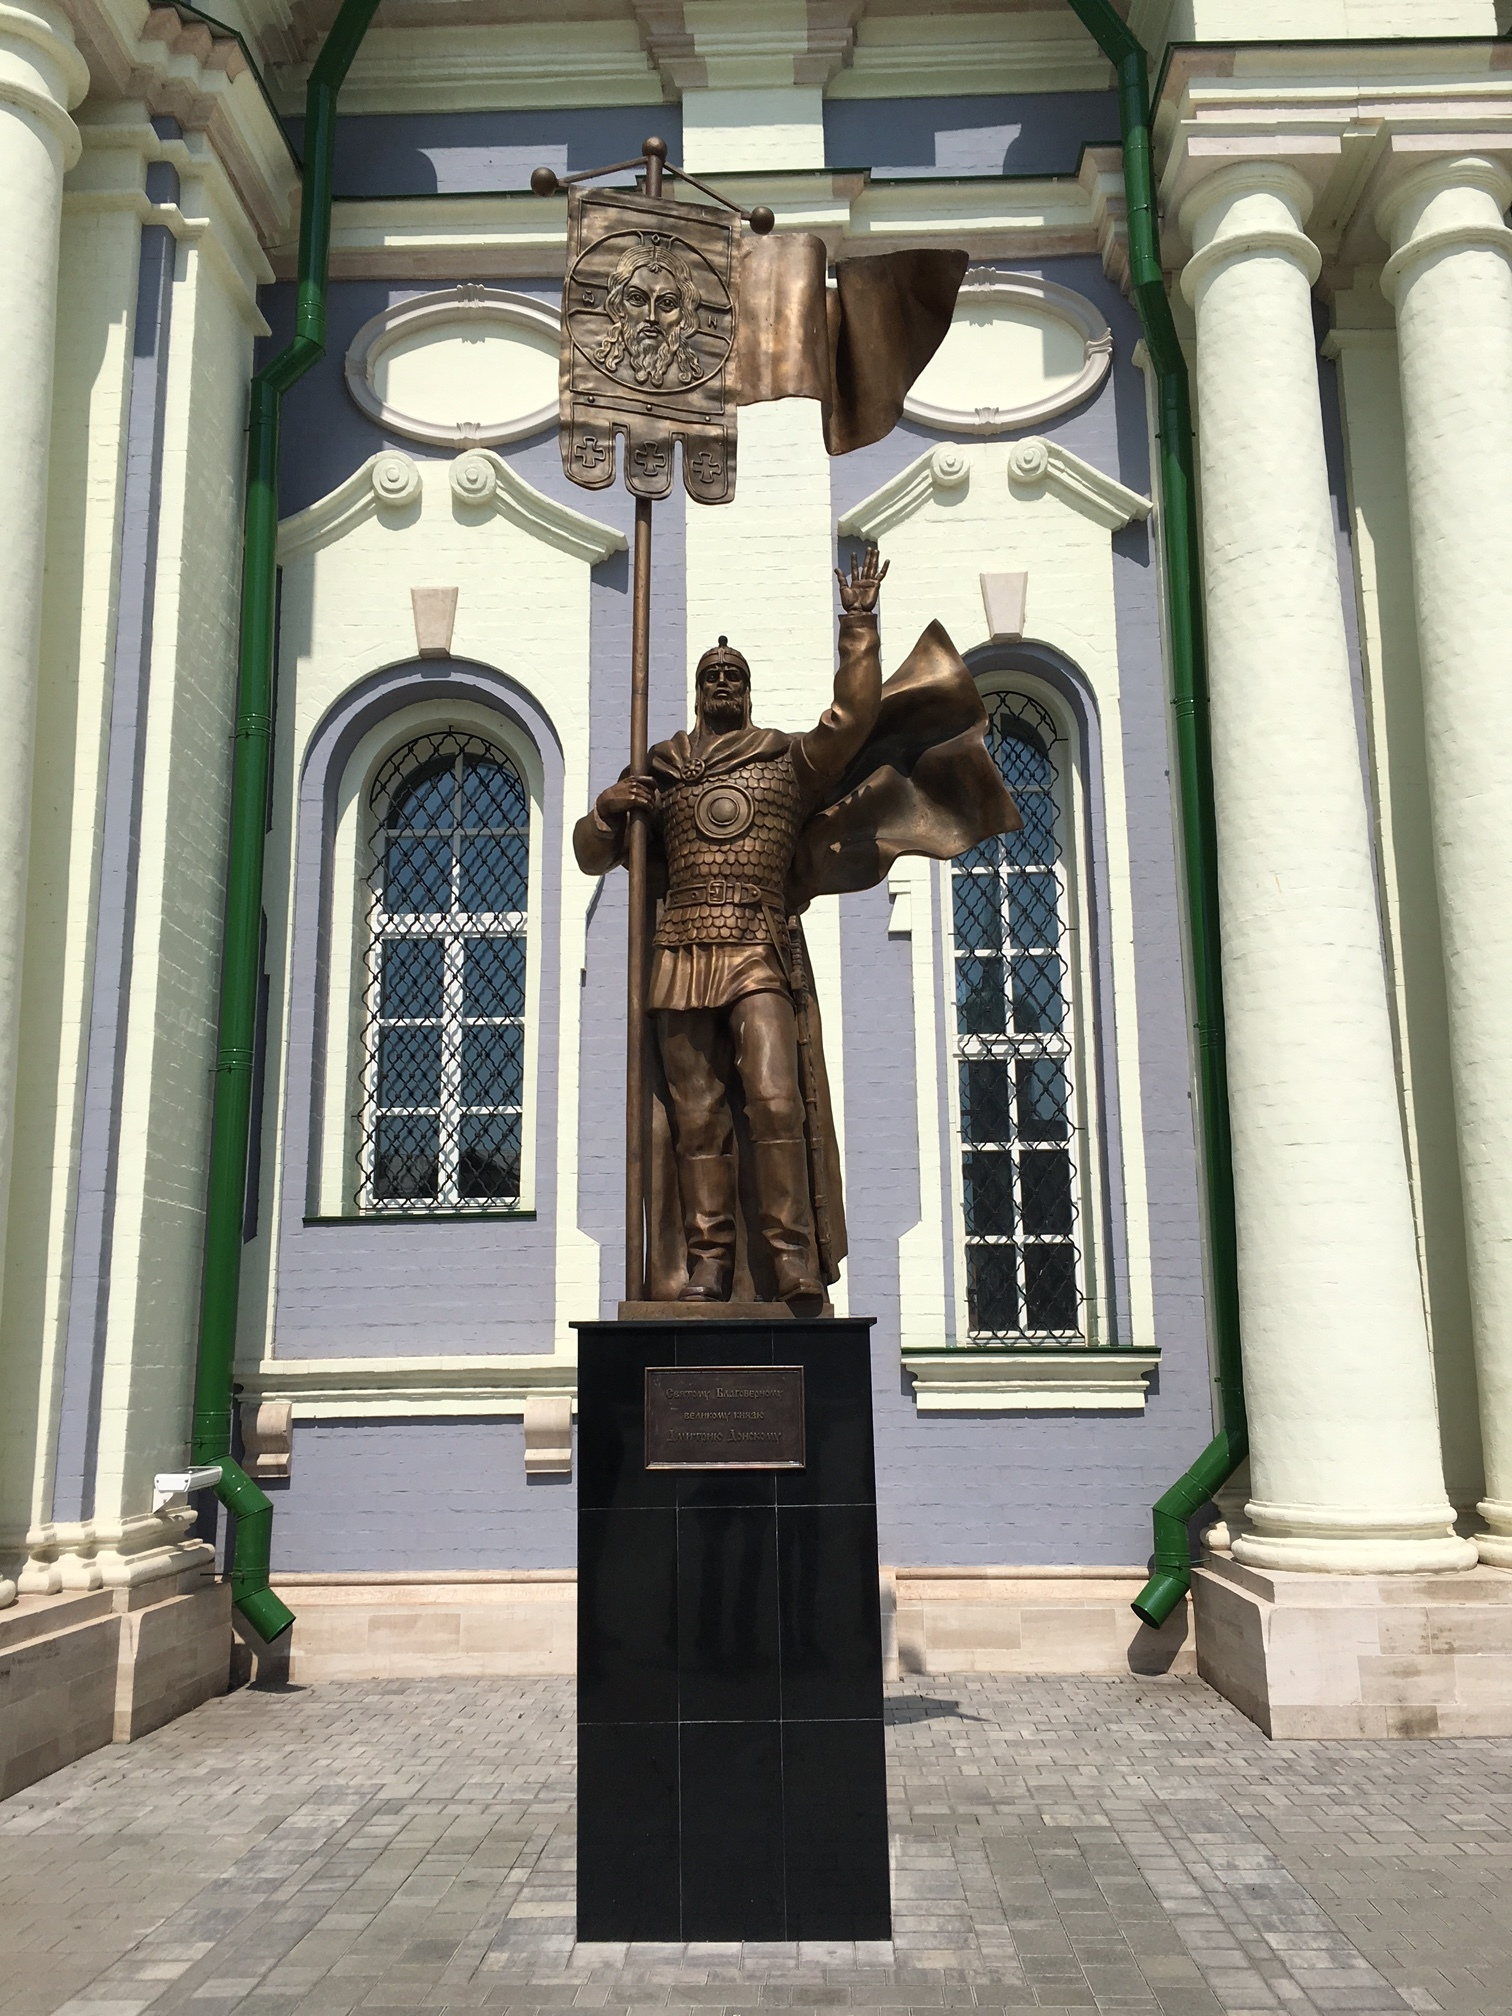 A statue of Dimitry Donskoy, a Russian Prince in the 14th century.